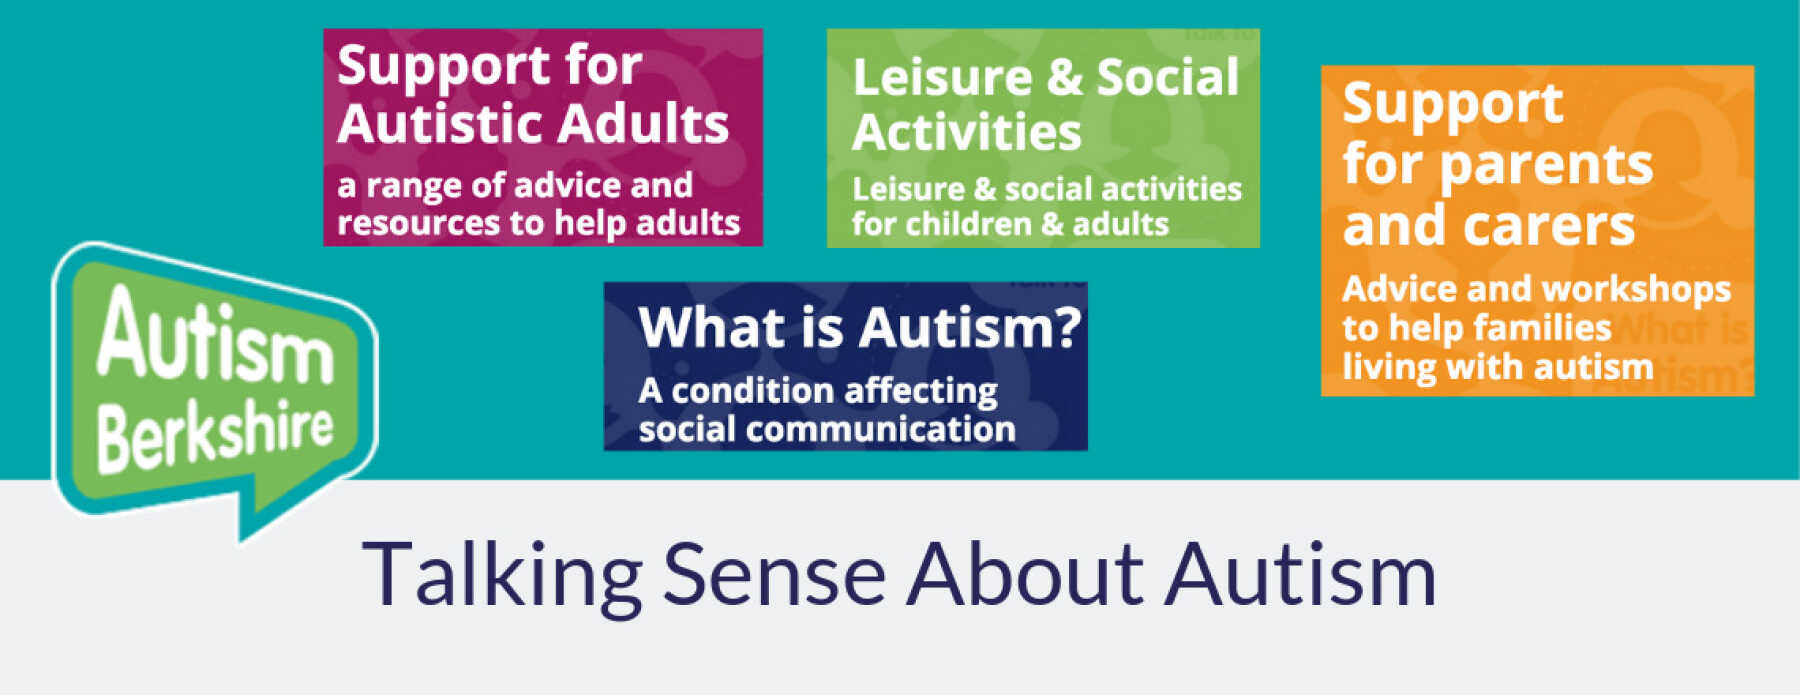 Featured Image for Autism Berkshire